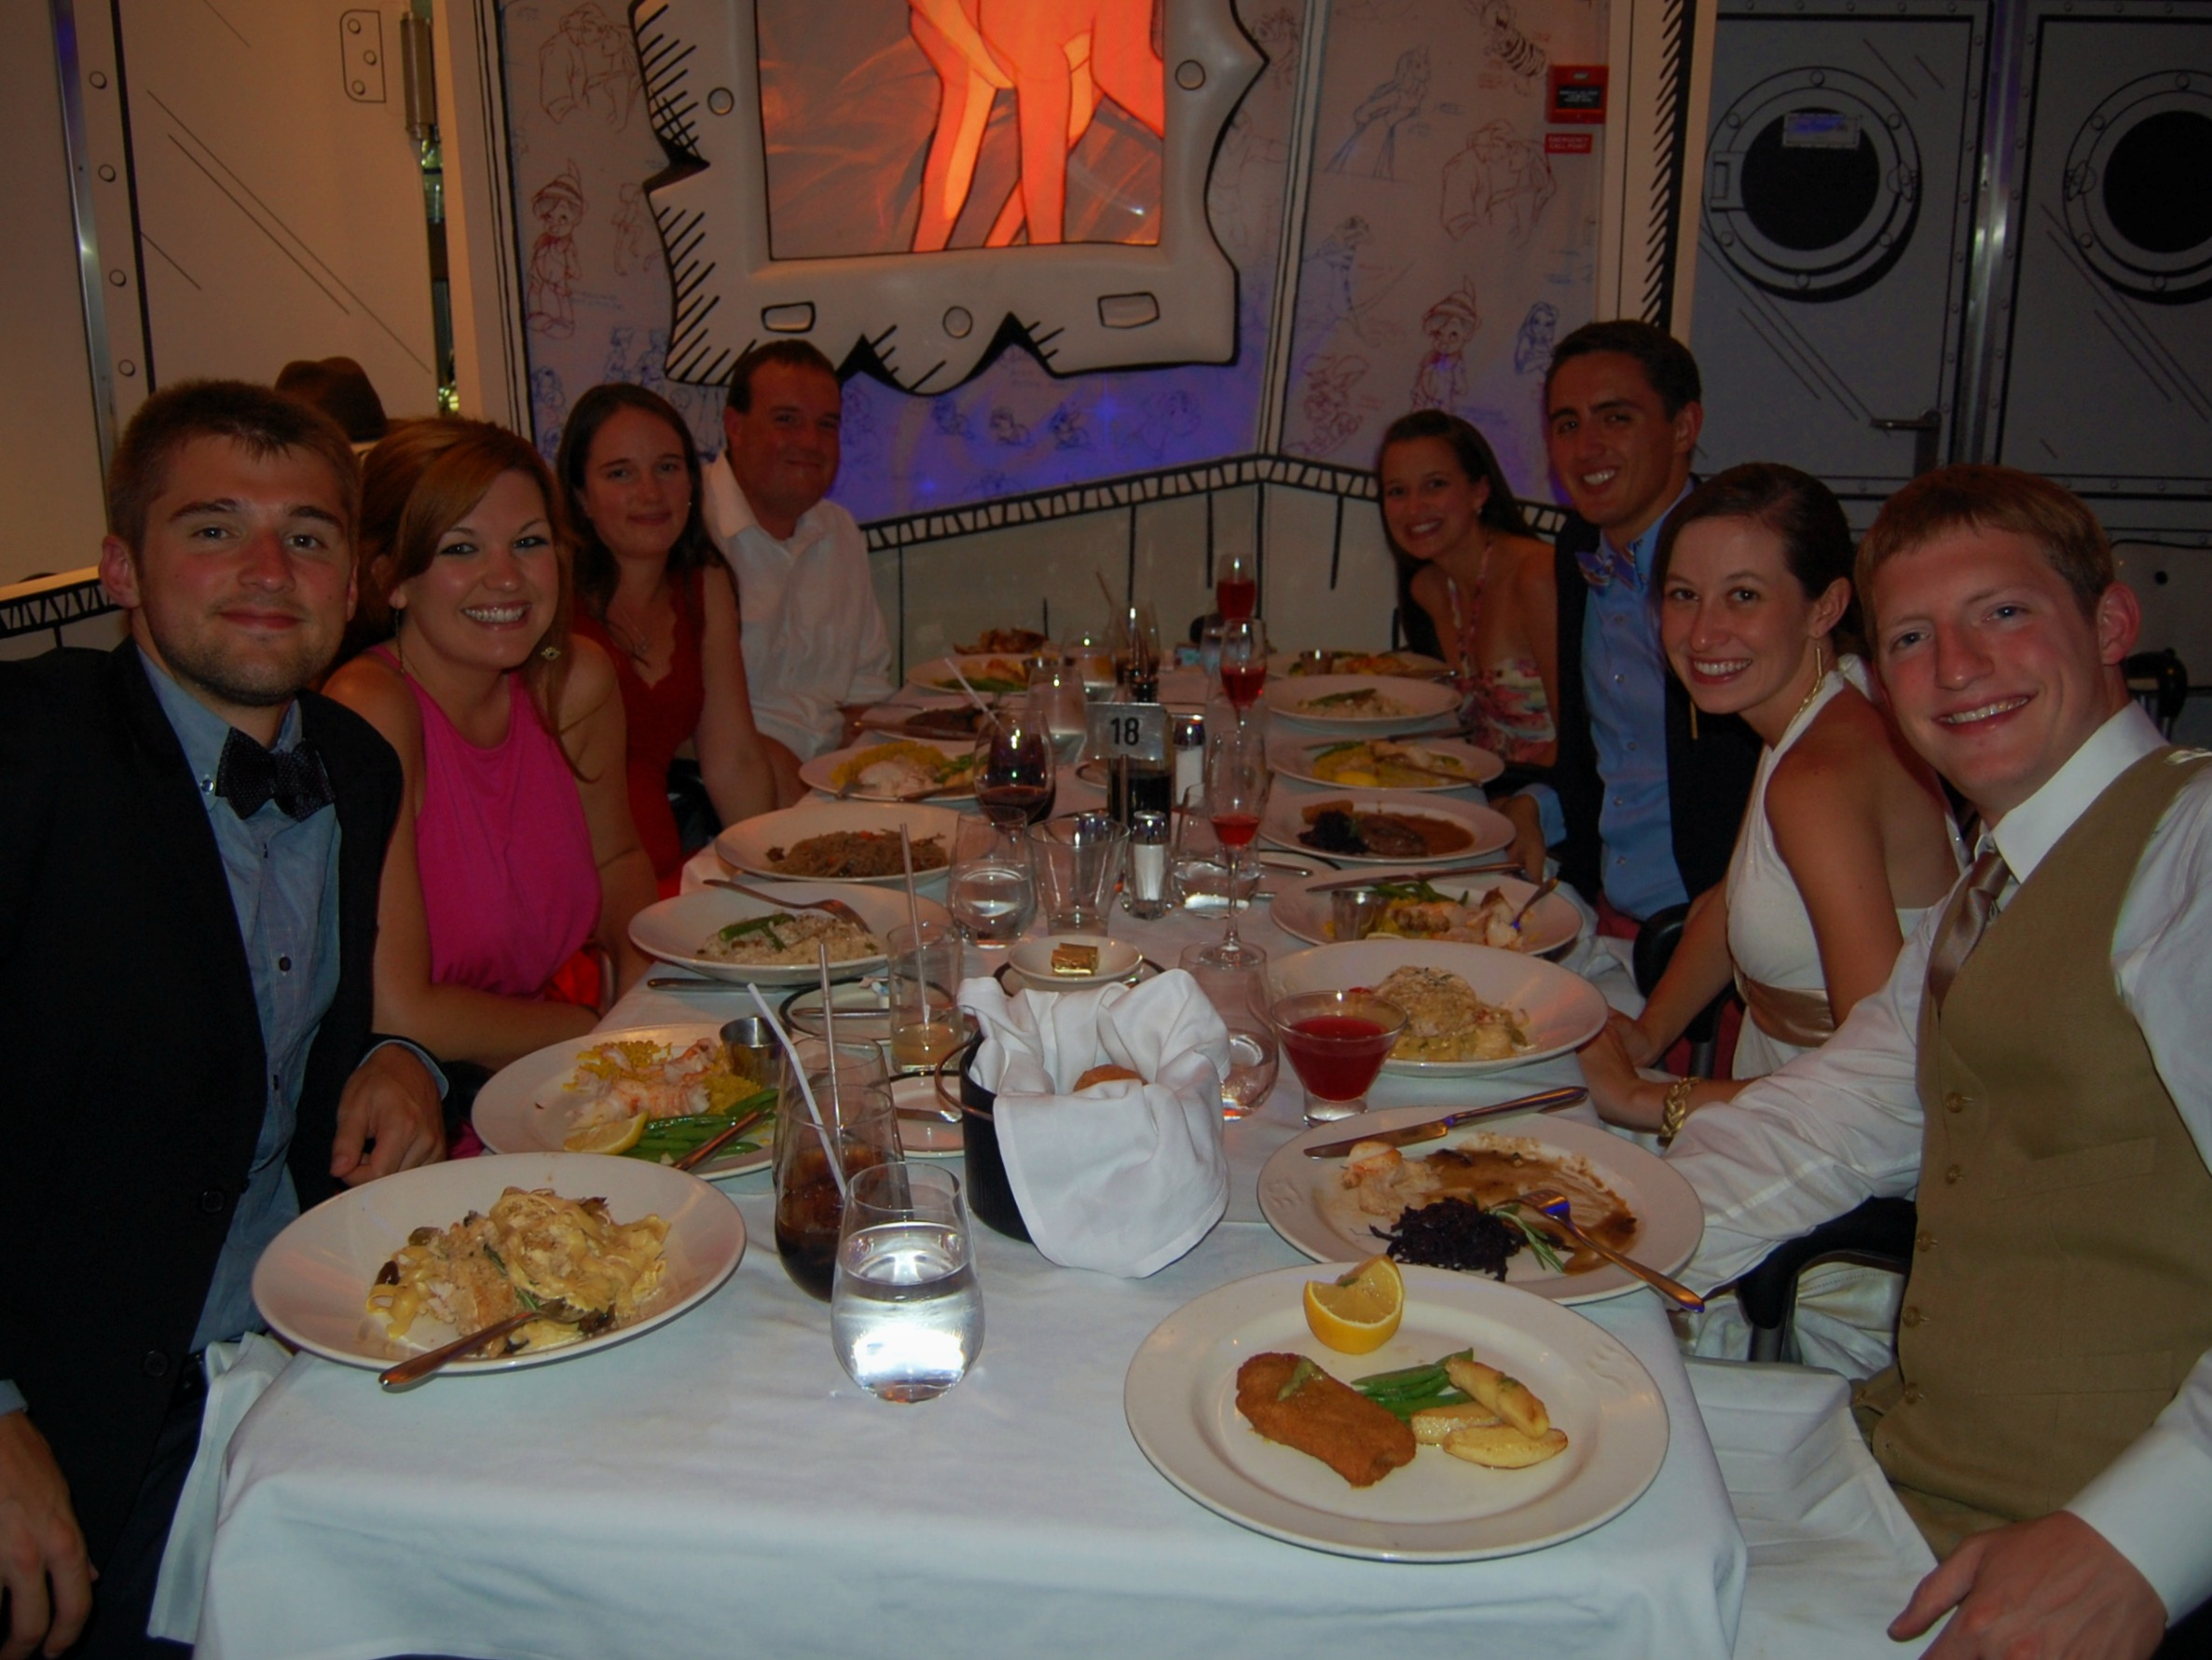 Disney Magic seated dinner group